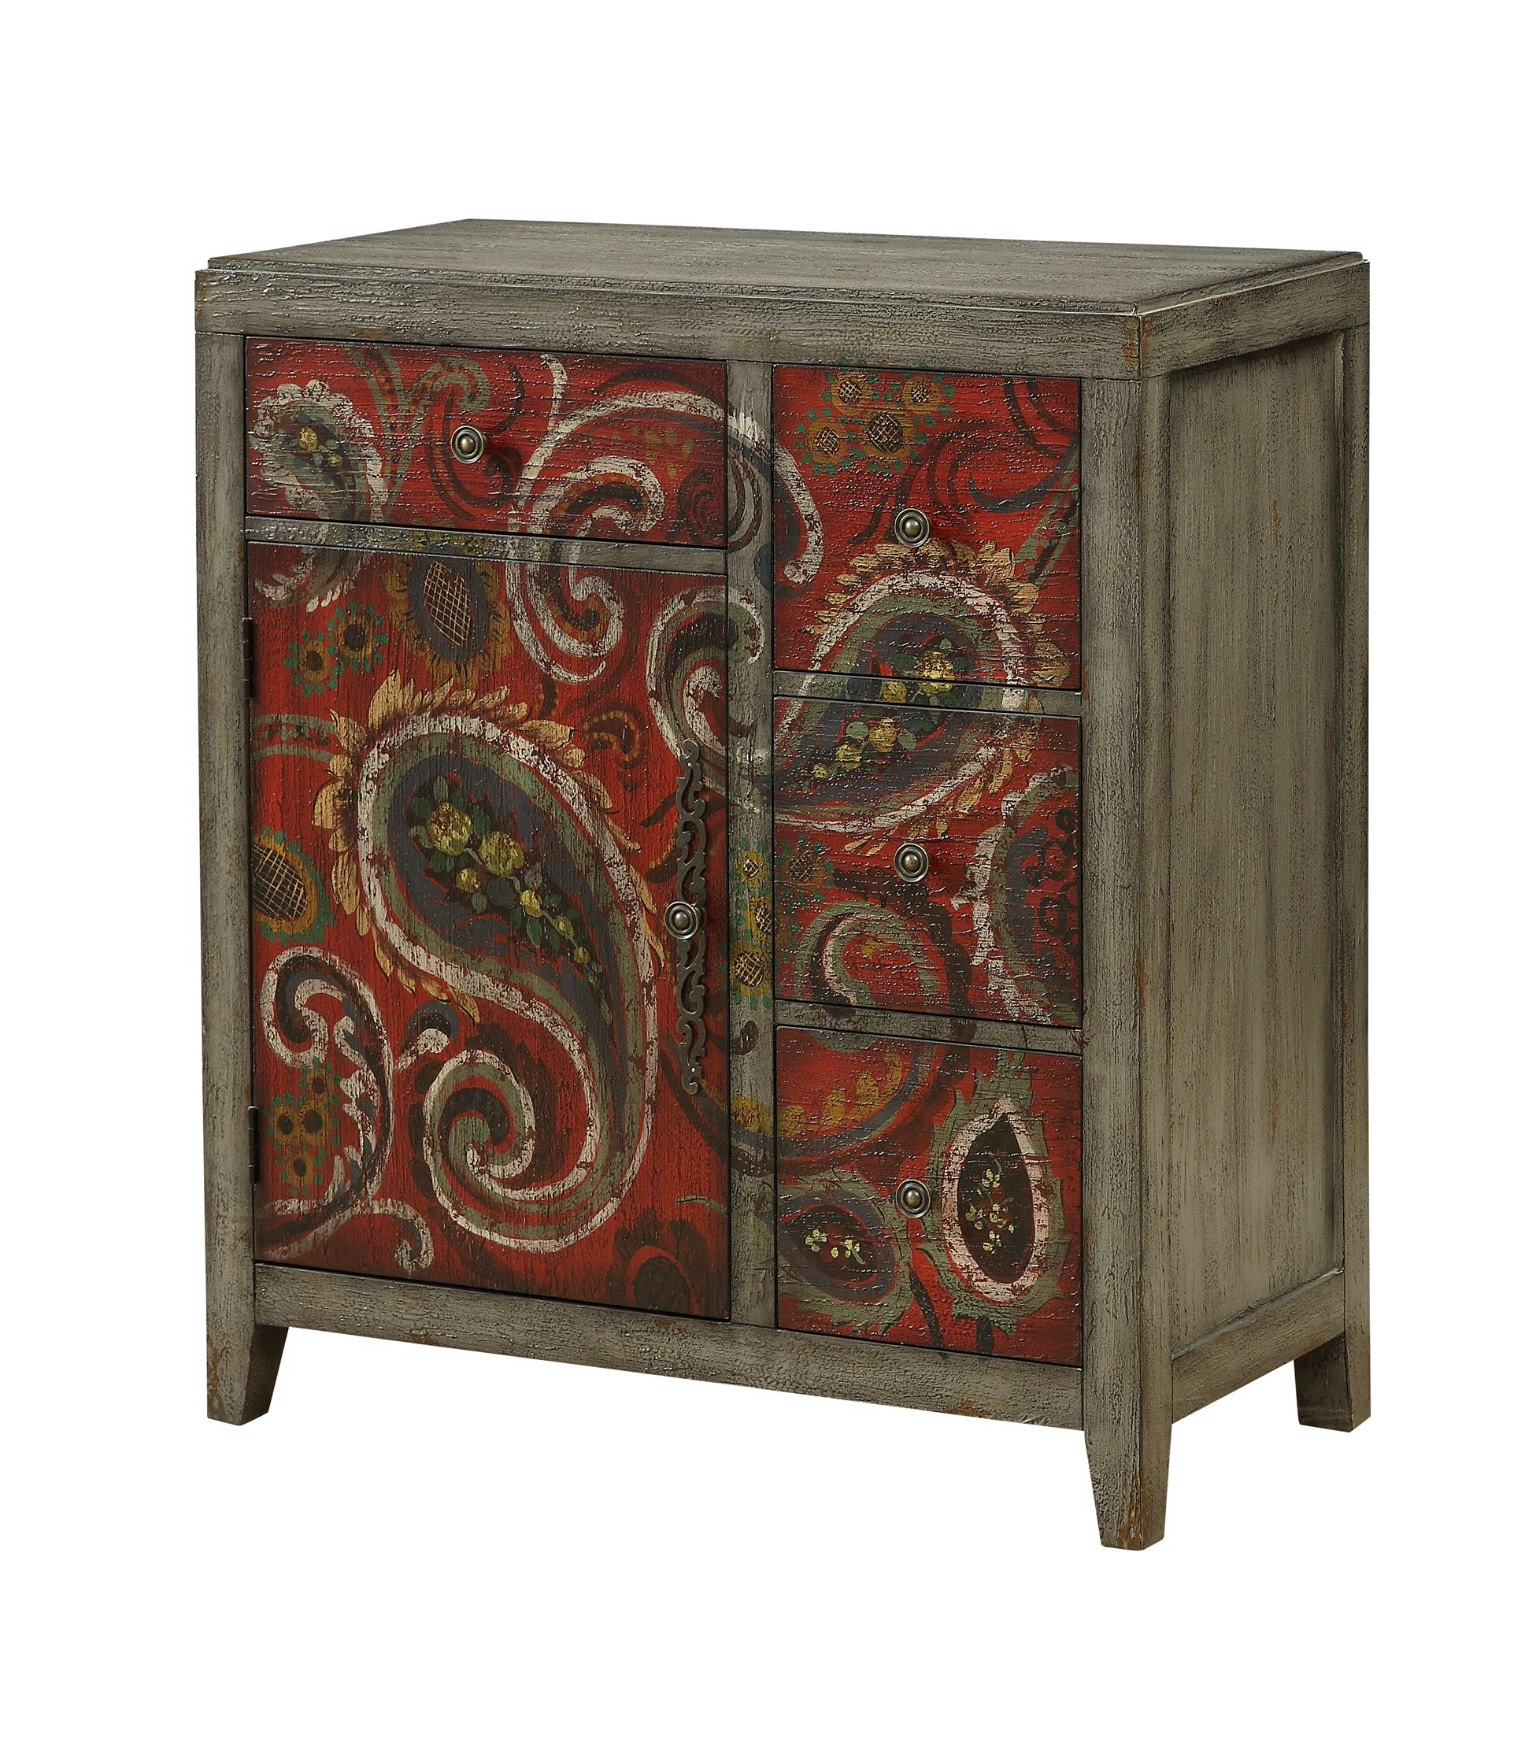 The Paisley Red Accent Cabinet Is Sure To Start A Conversation. Great  Storage Options With Drawers And A Door To Make Organized Storage Simple.